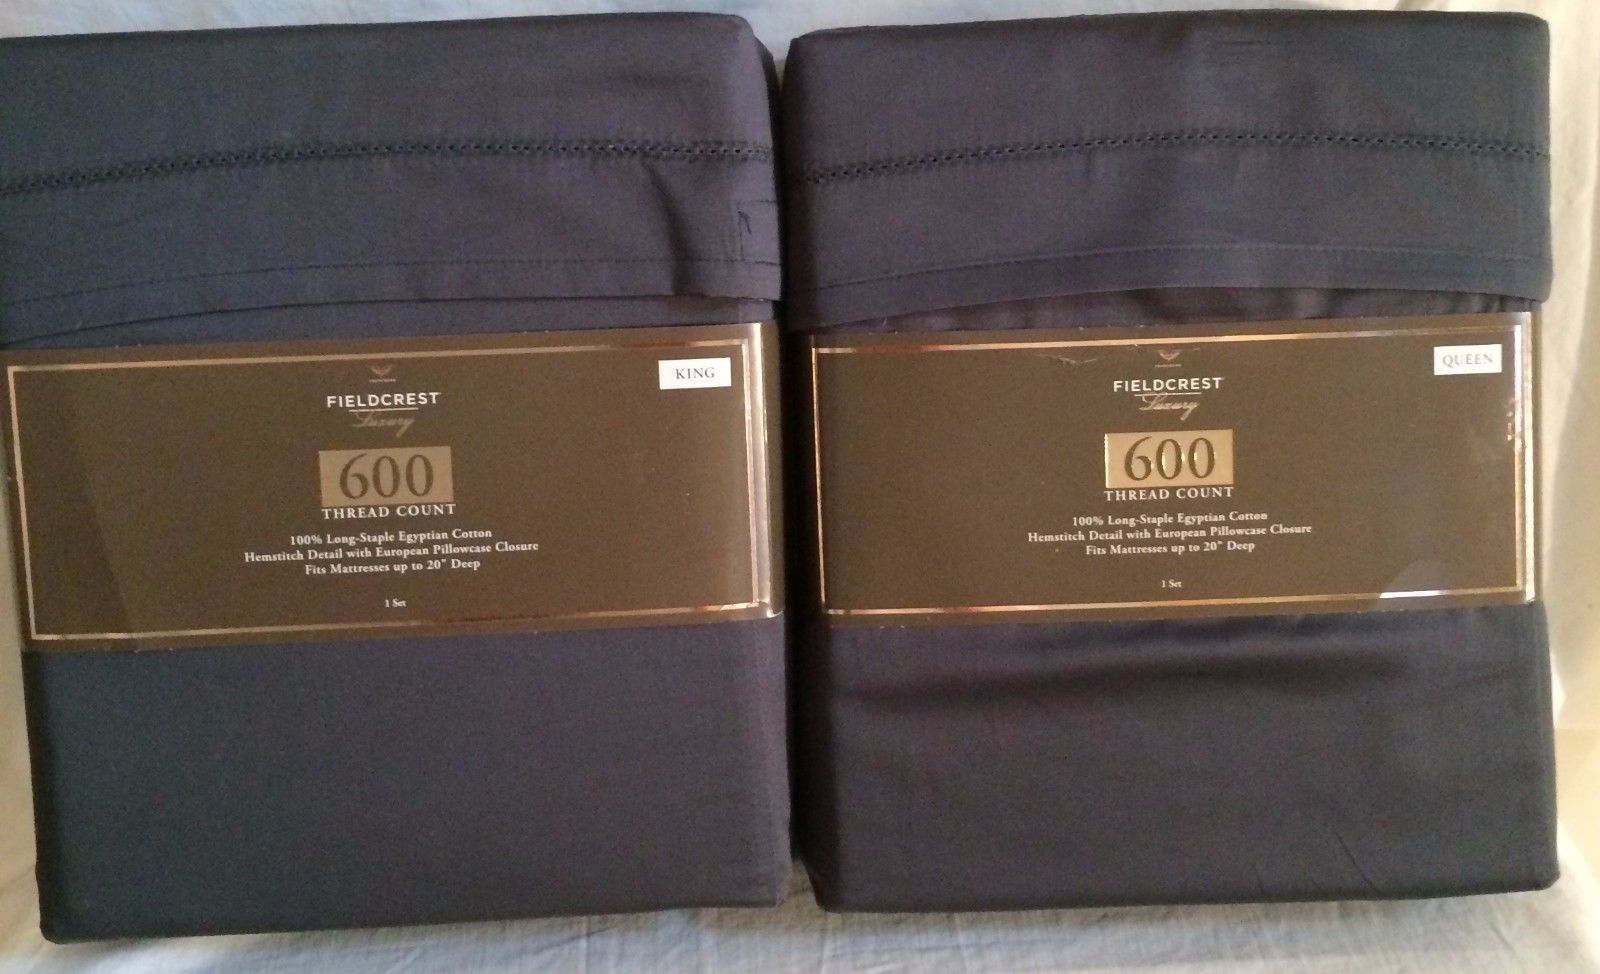 T Shirt Bed Sheets Target | Target Organic Cotton Sheets | Fieldcrest Luxury Sheets